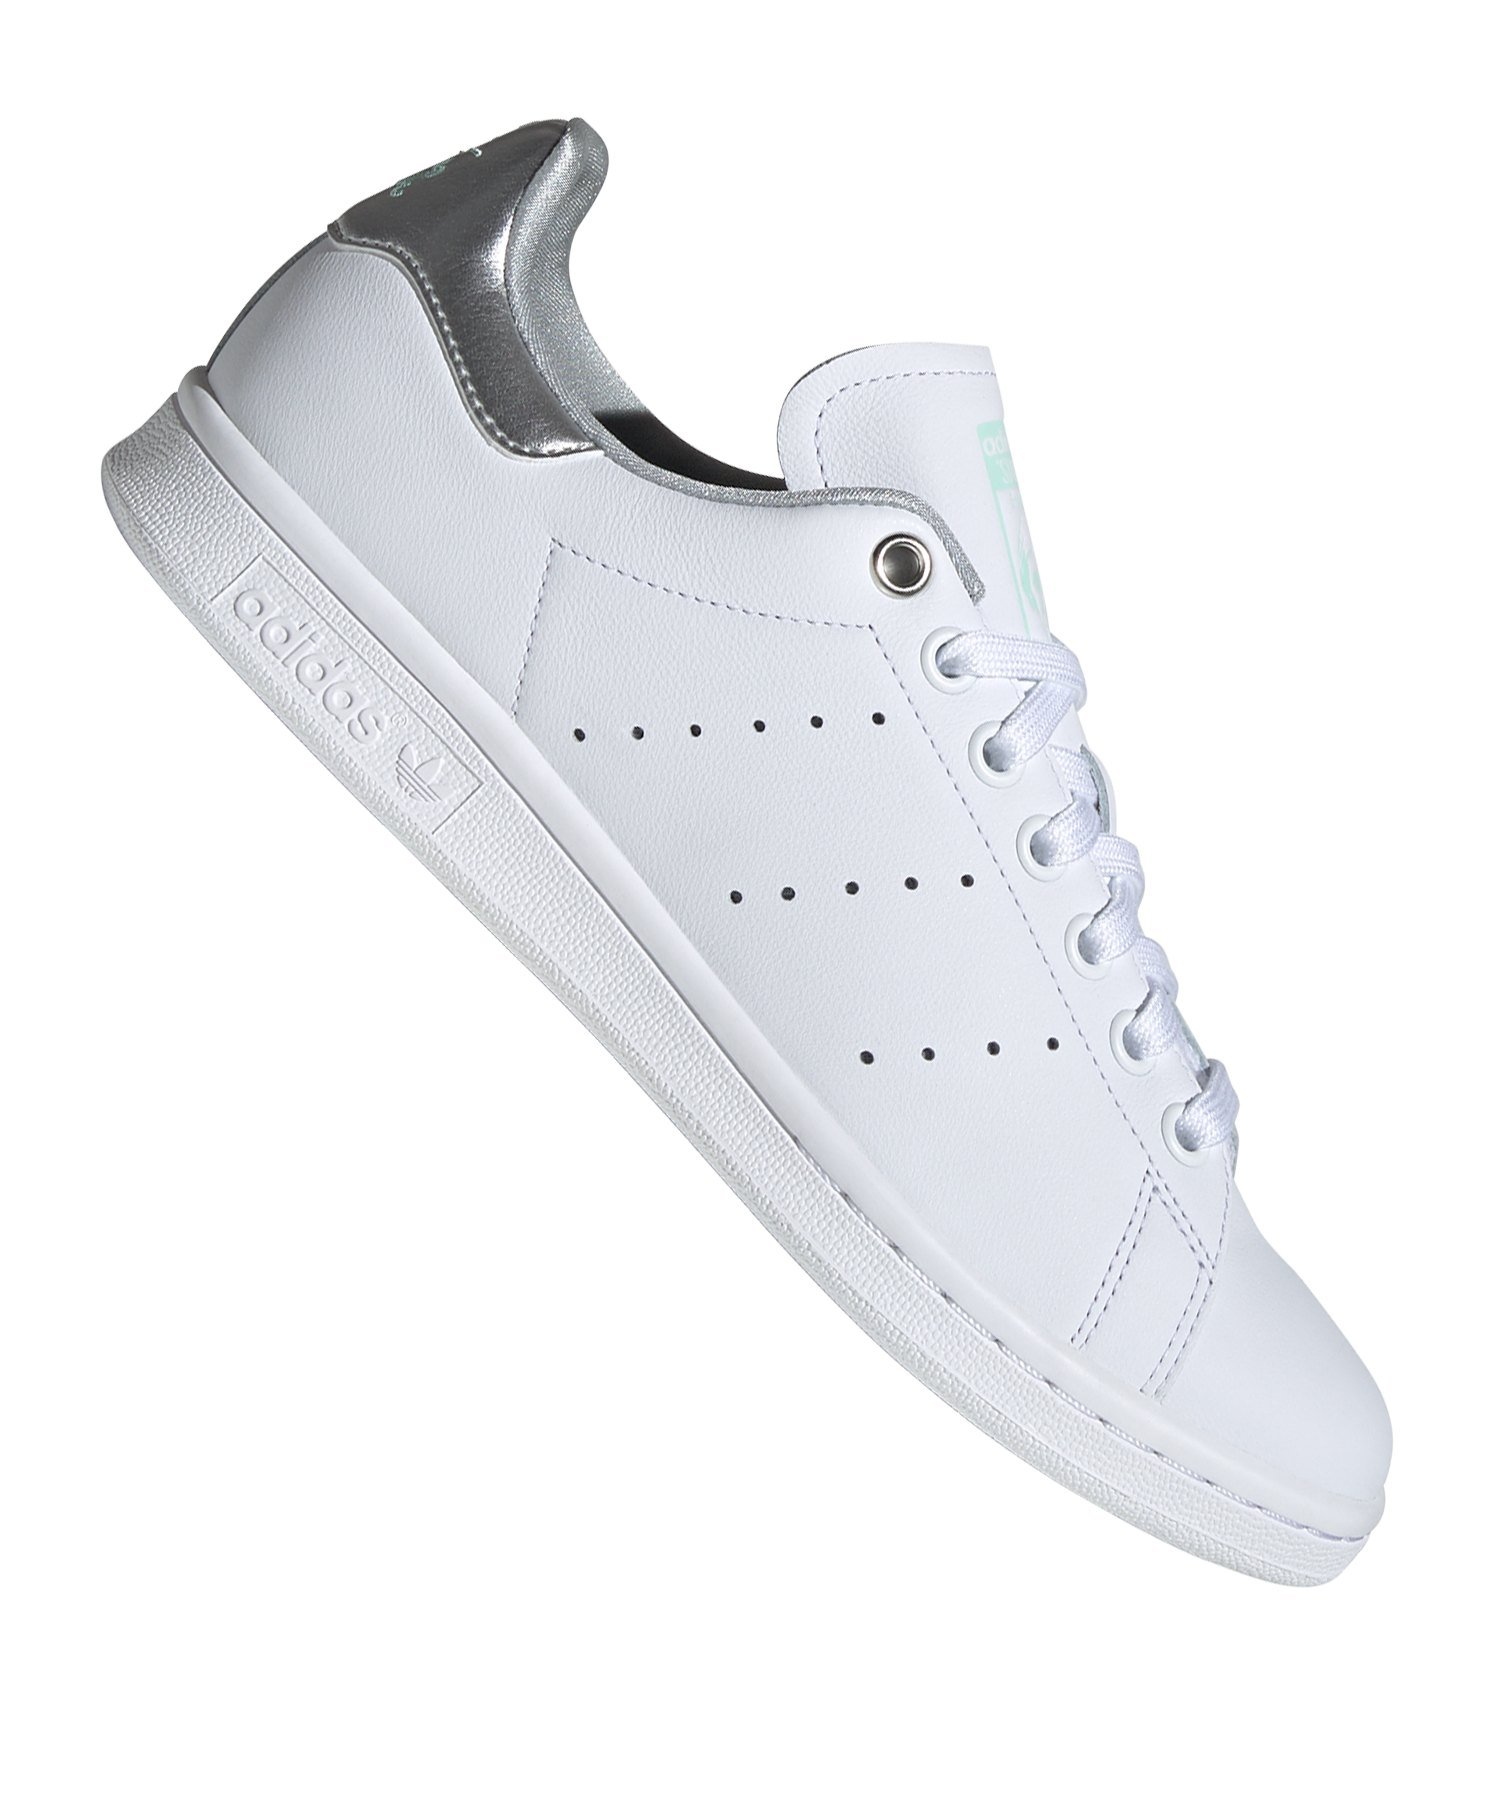 adidas Originals Stan Smith Sneaker Damen Weiss |Lifestyle ...